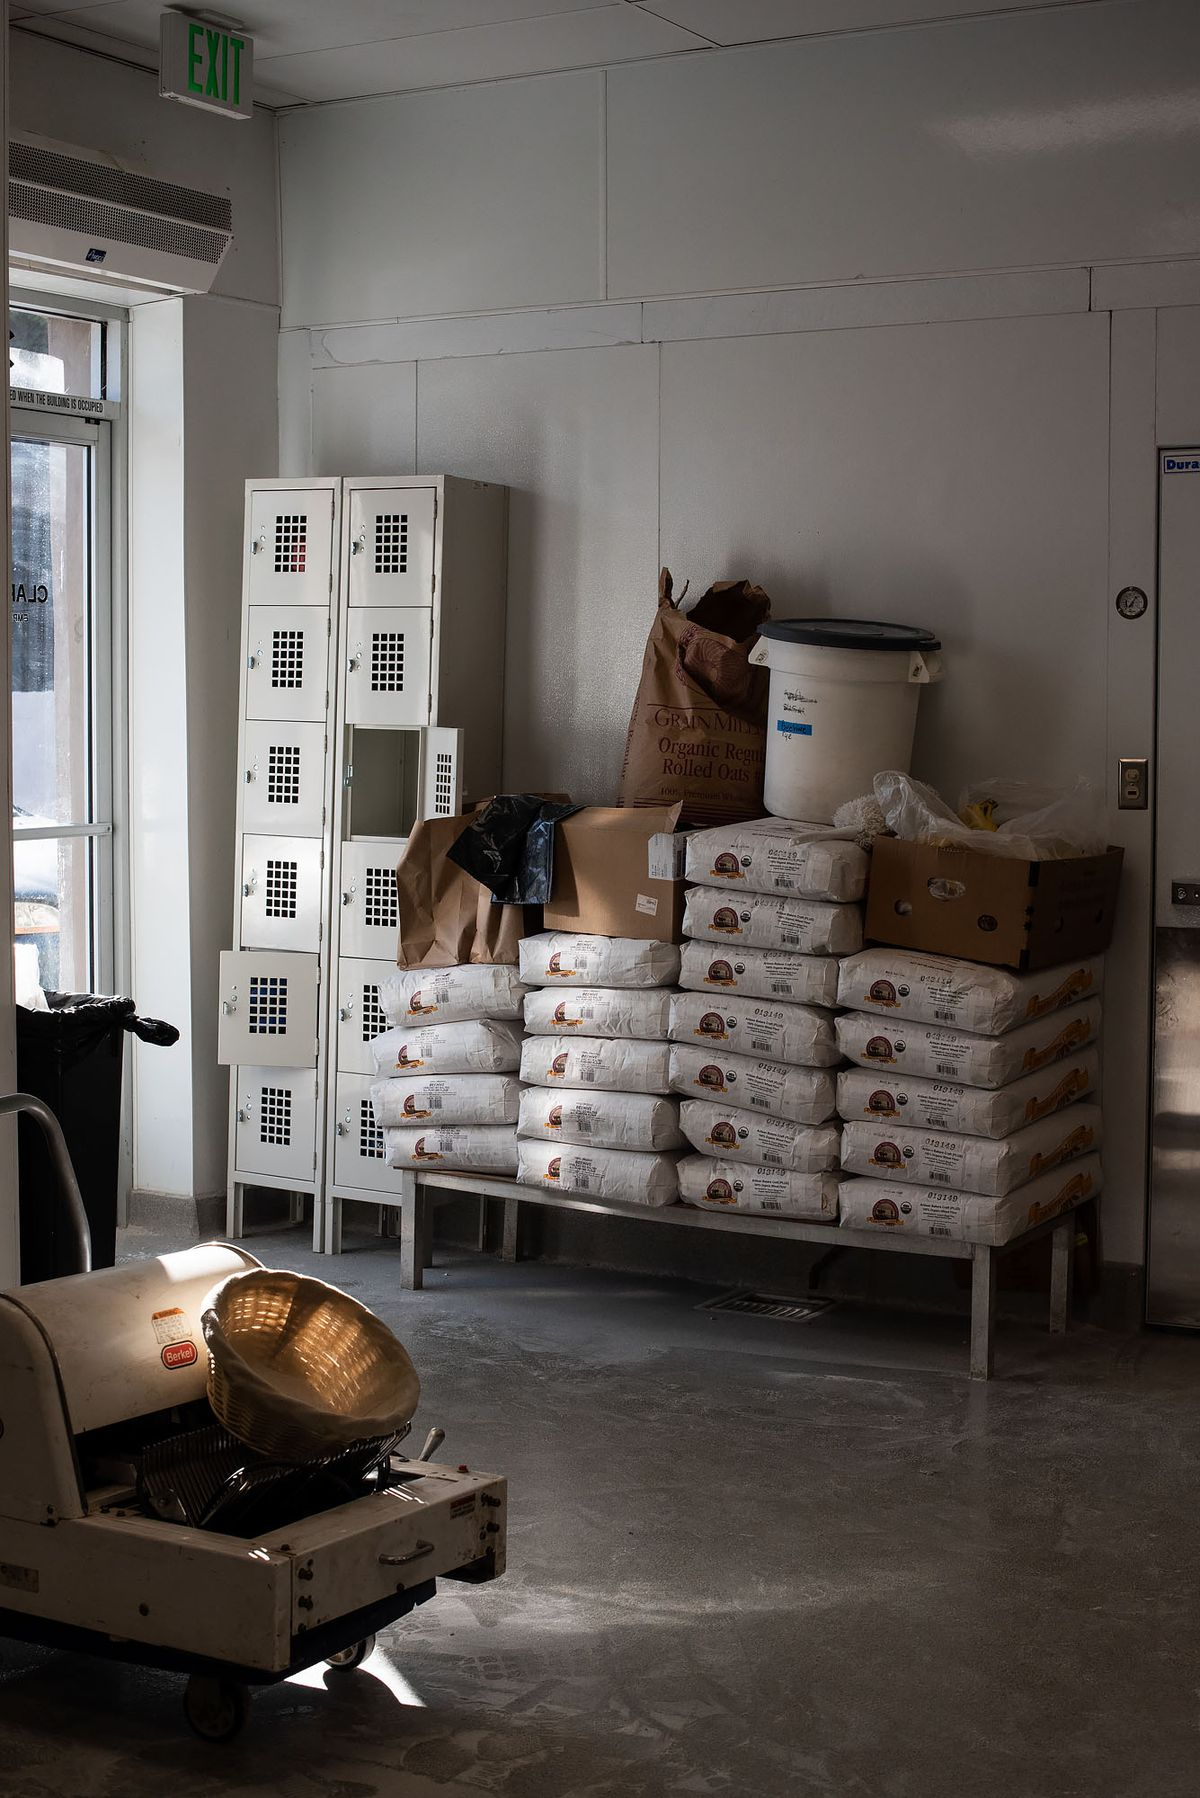 Stacked flour at a new bakery as sun streams in.